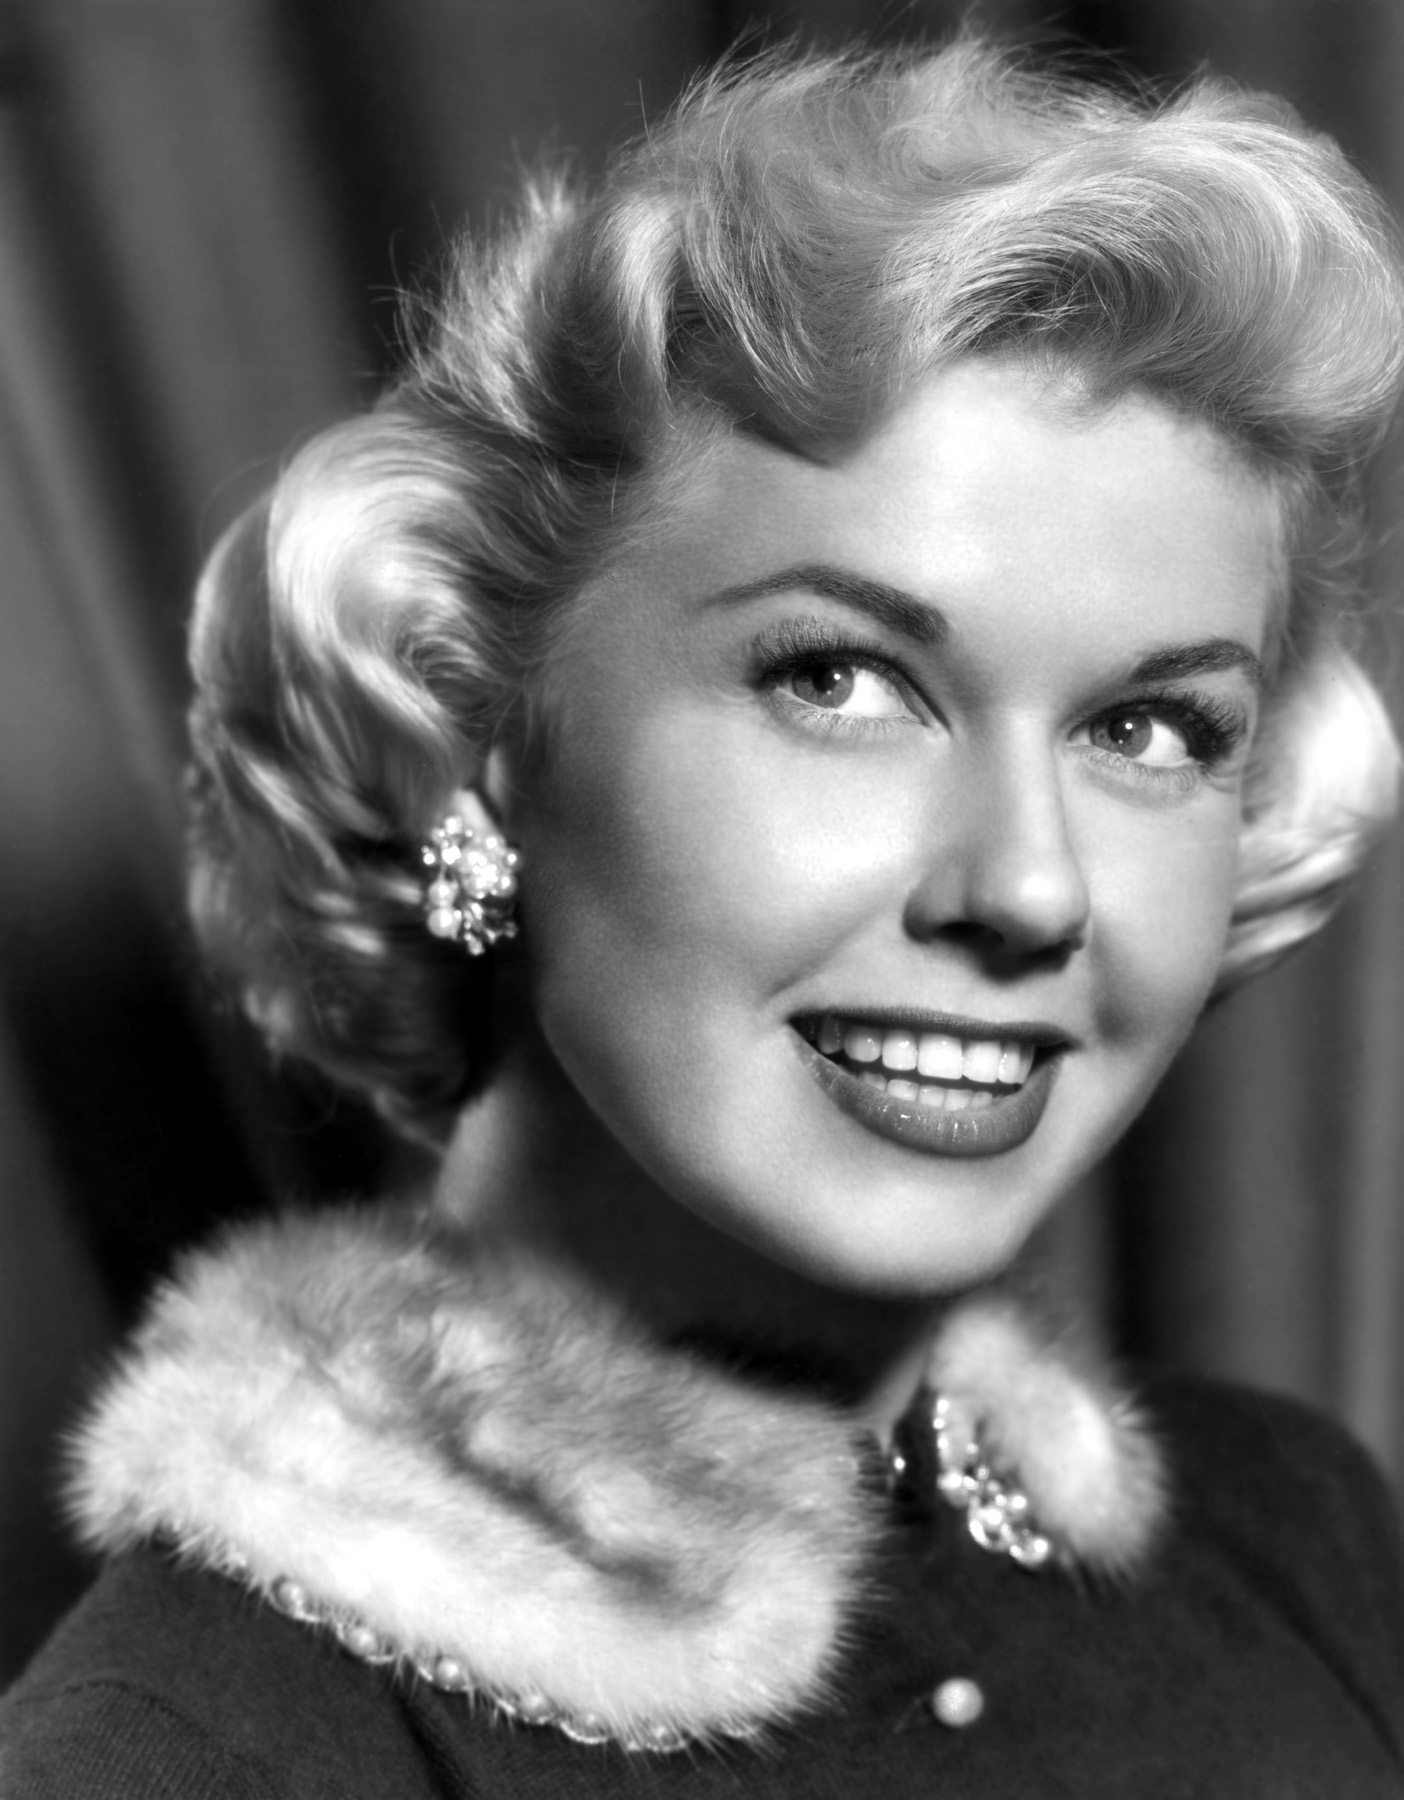 doris day perhaps скачатьdoris day perhaps, doris day fly me to the moon, doris day que sera, doris day спб, doris day perhaps скачать, doris day скачать, doris day tea for two, doris day 2016, doris day перевод, doris day tea for two lyrics, doris day perhaps минус, doris day again, doris day 2017, doris day songs, doris day mp3, doris day perhaps текст, doris day песни, doris day movies, doris day discography, doris day fly me to the moon lyrics